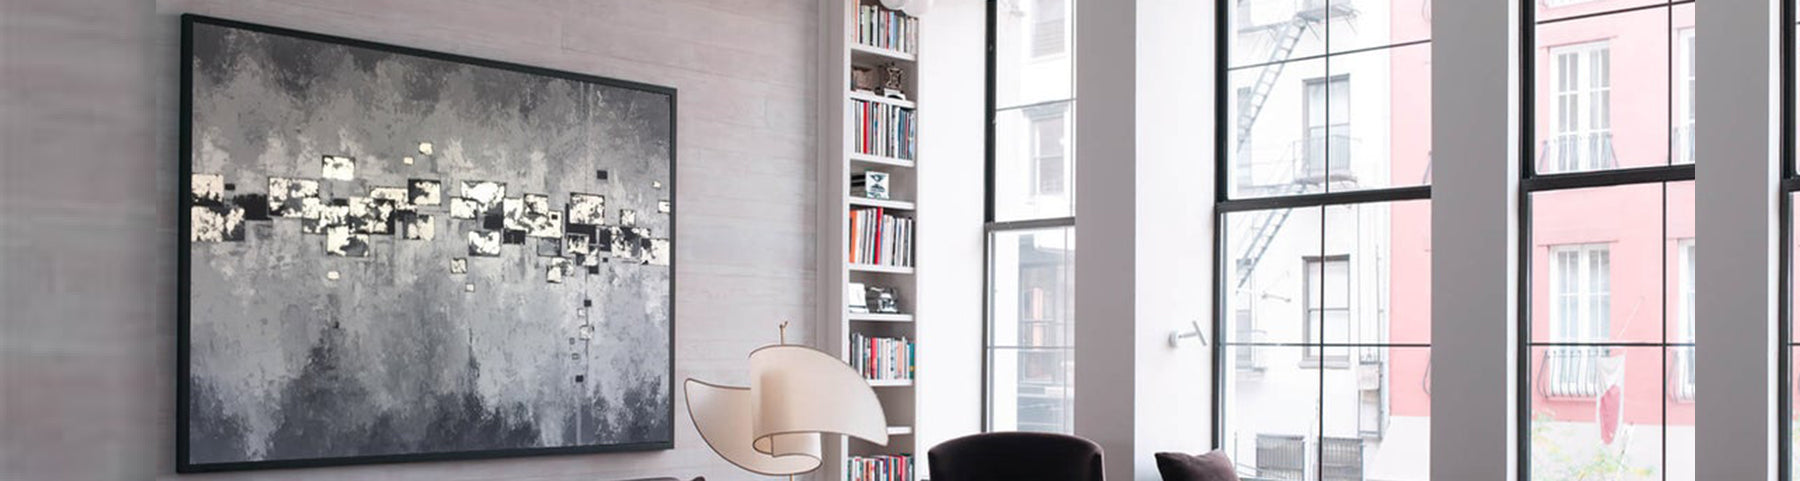 How to decorate an office with minimal art